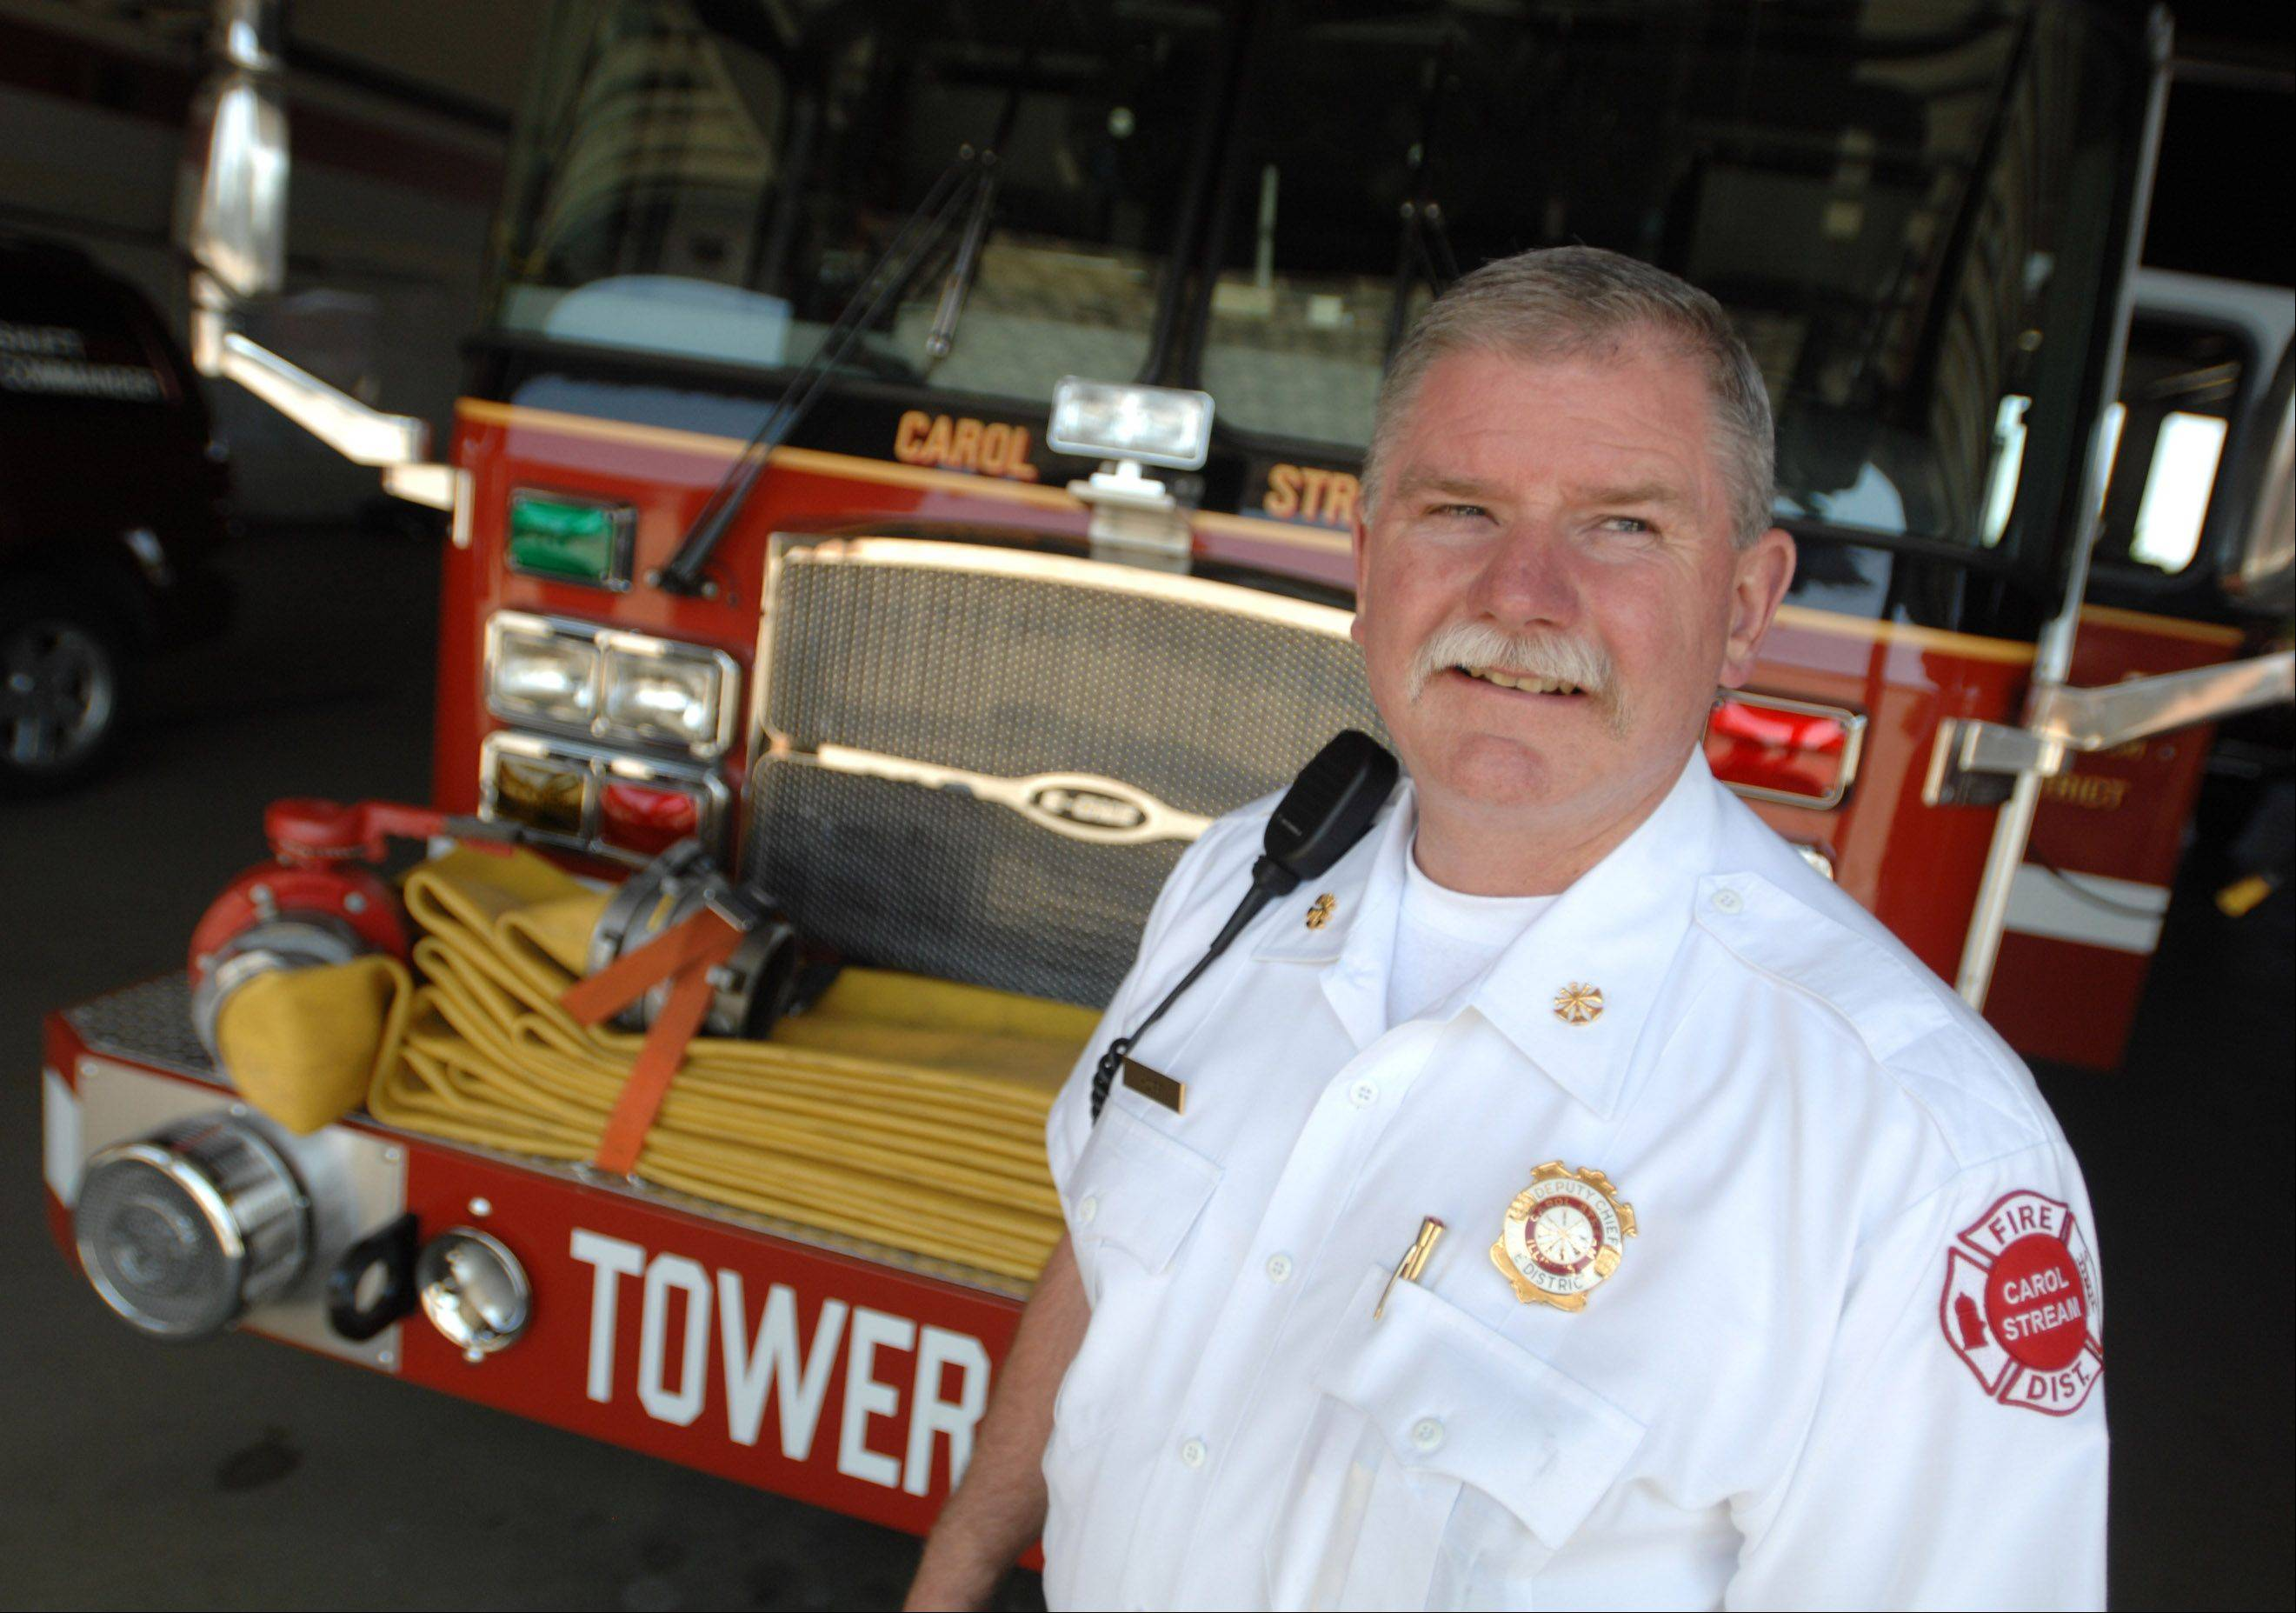 Bob Hoff served as a firefighter in Chicago for more than three decades, eventually rising through the ranks until he was the man in charge. But after stepping down in February, he took a new job in fire service: deputy chief in Carol Stream.